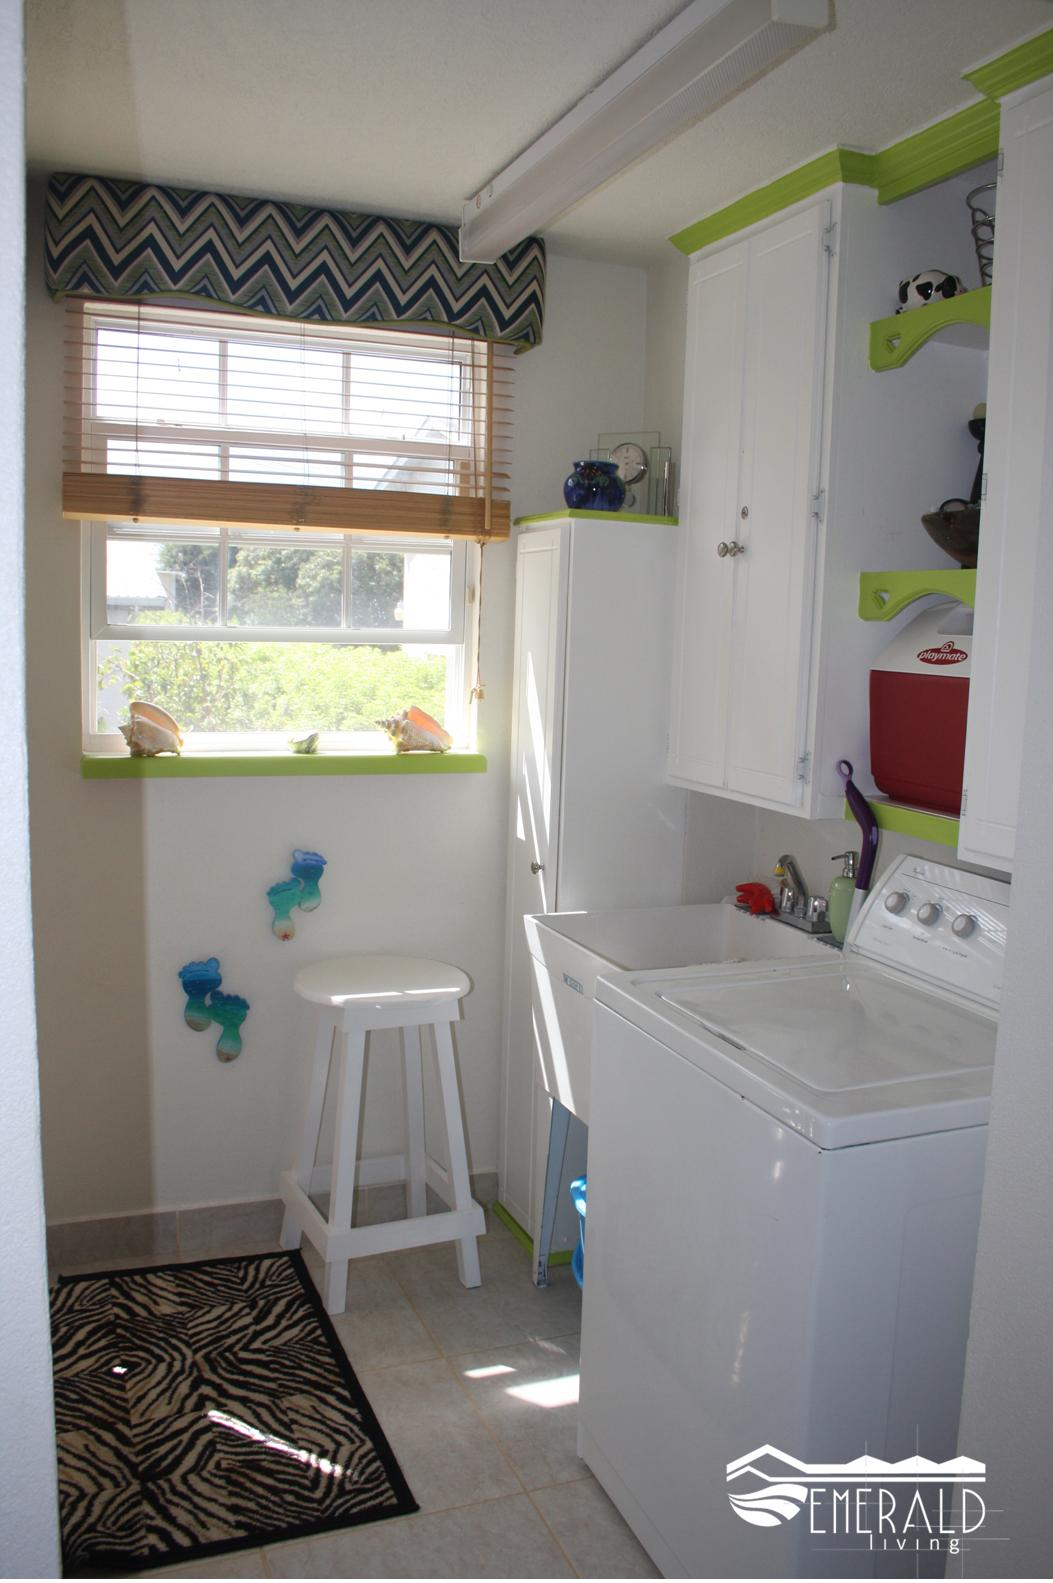 EMERALD LIVING | Laundry